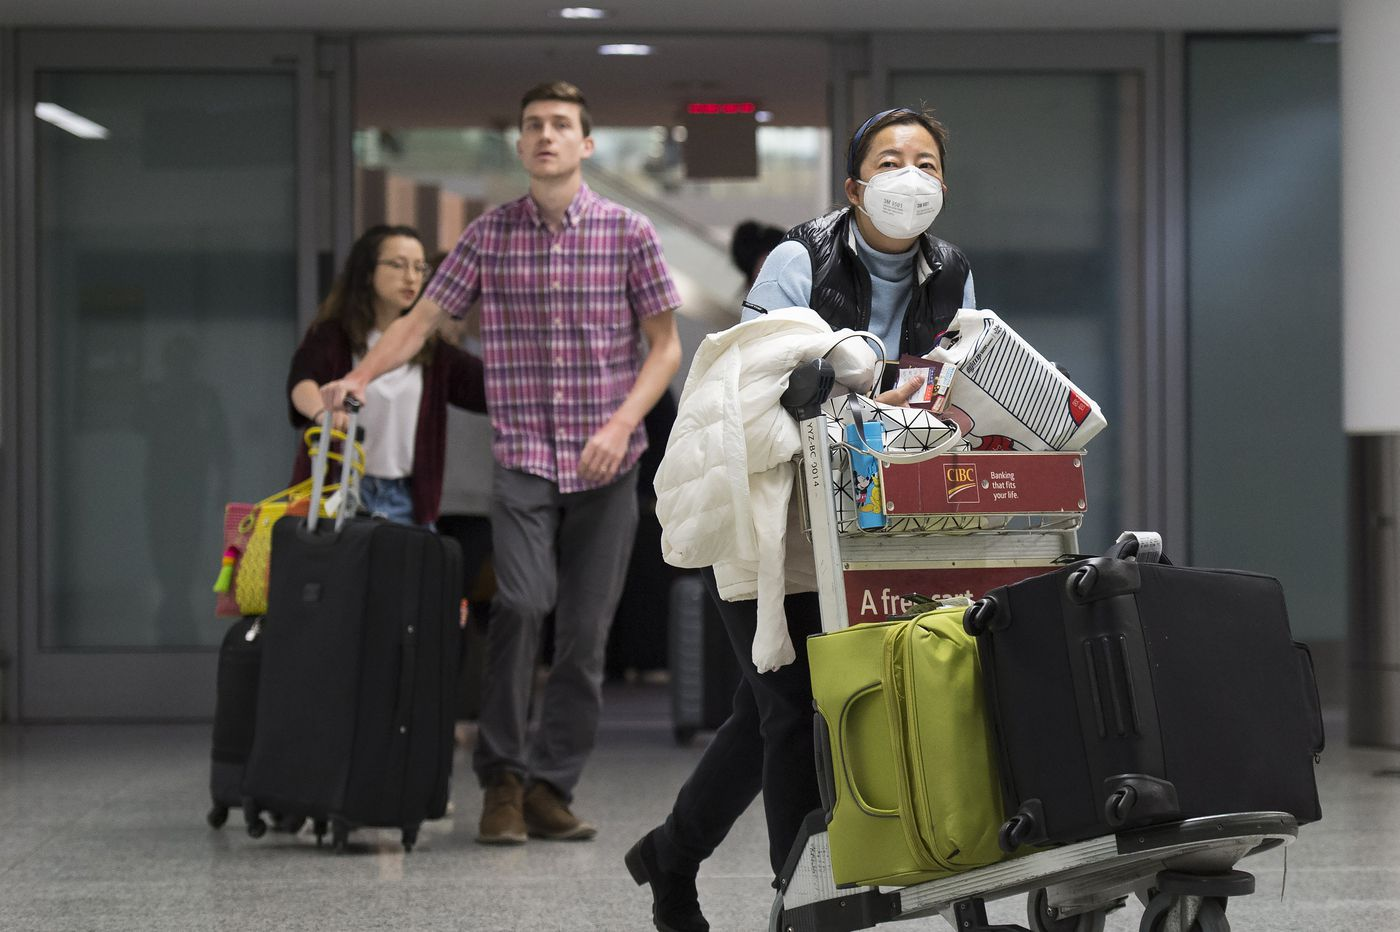 Philadelphia-area universities move to restrict China travel due to coronavirus